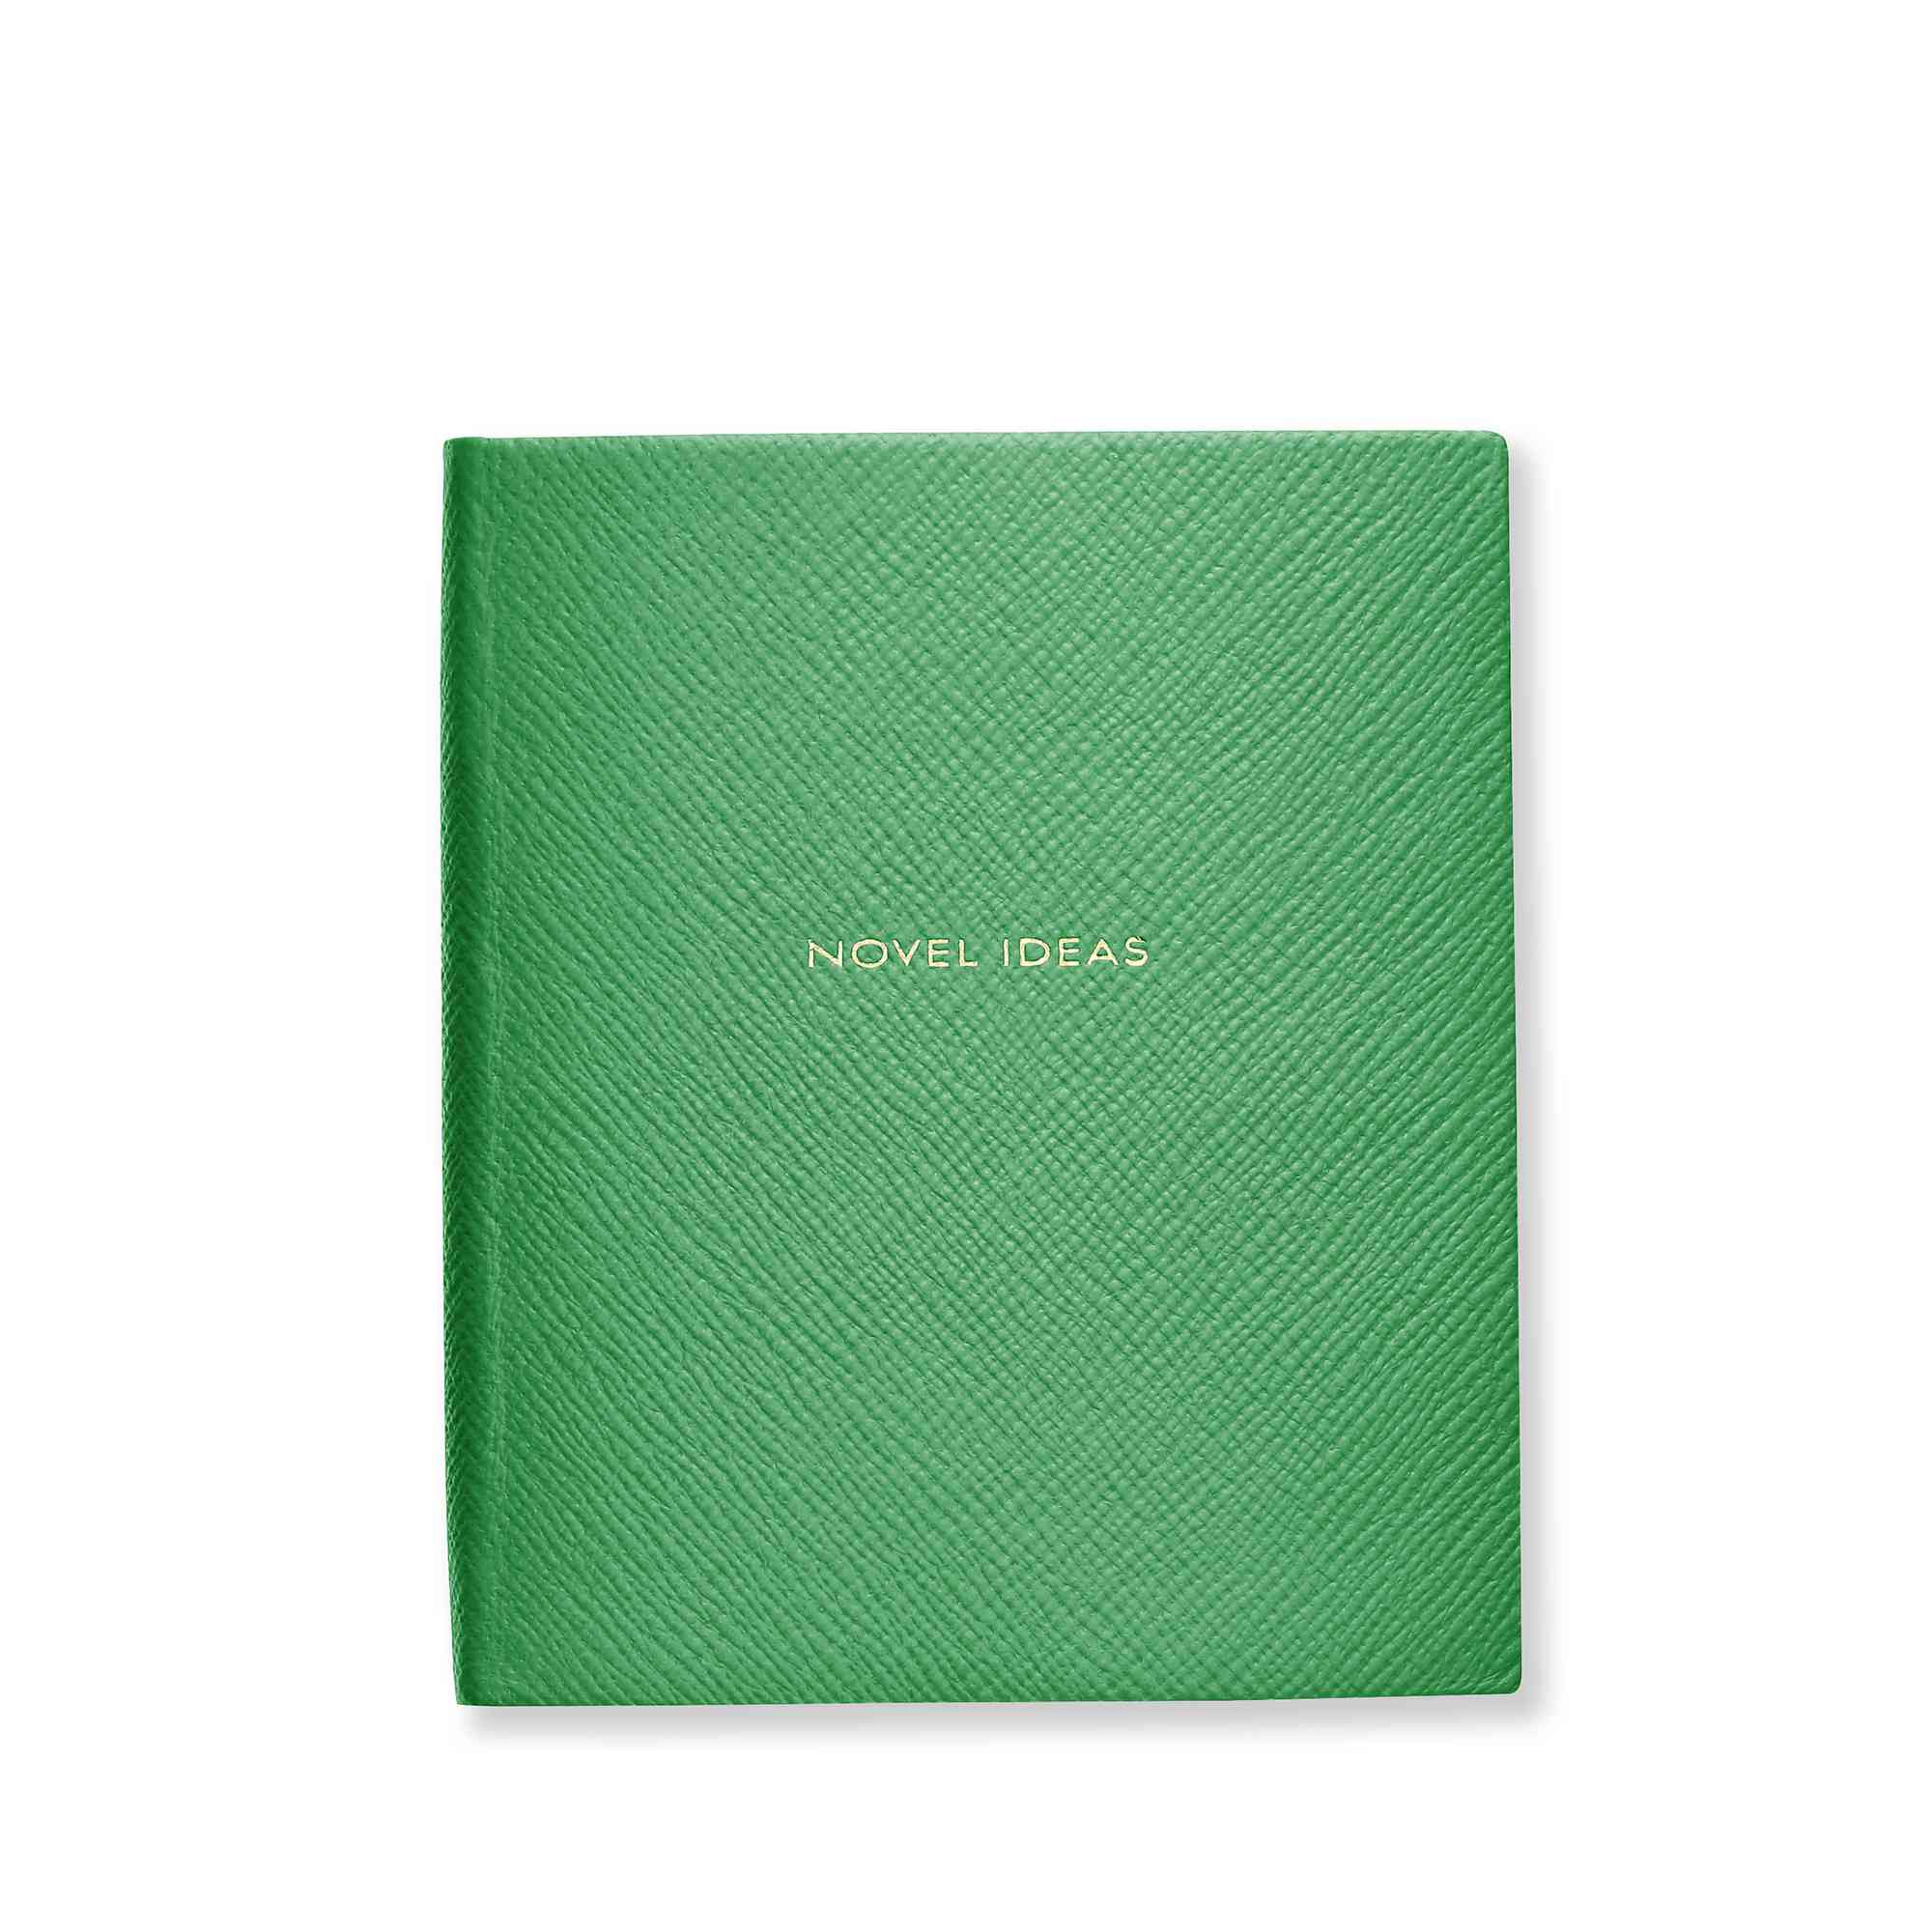 Smythson Novel Ideas Premier Notebook